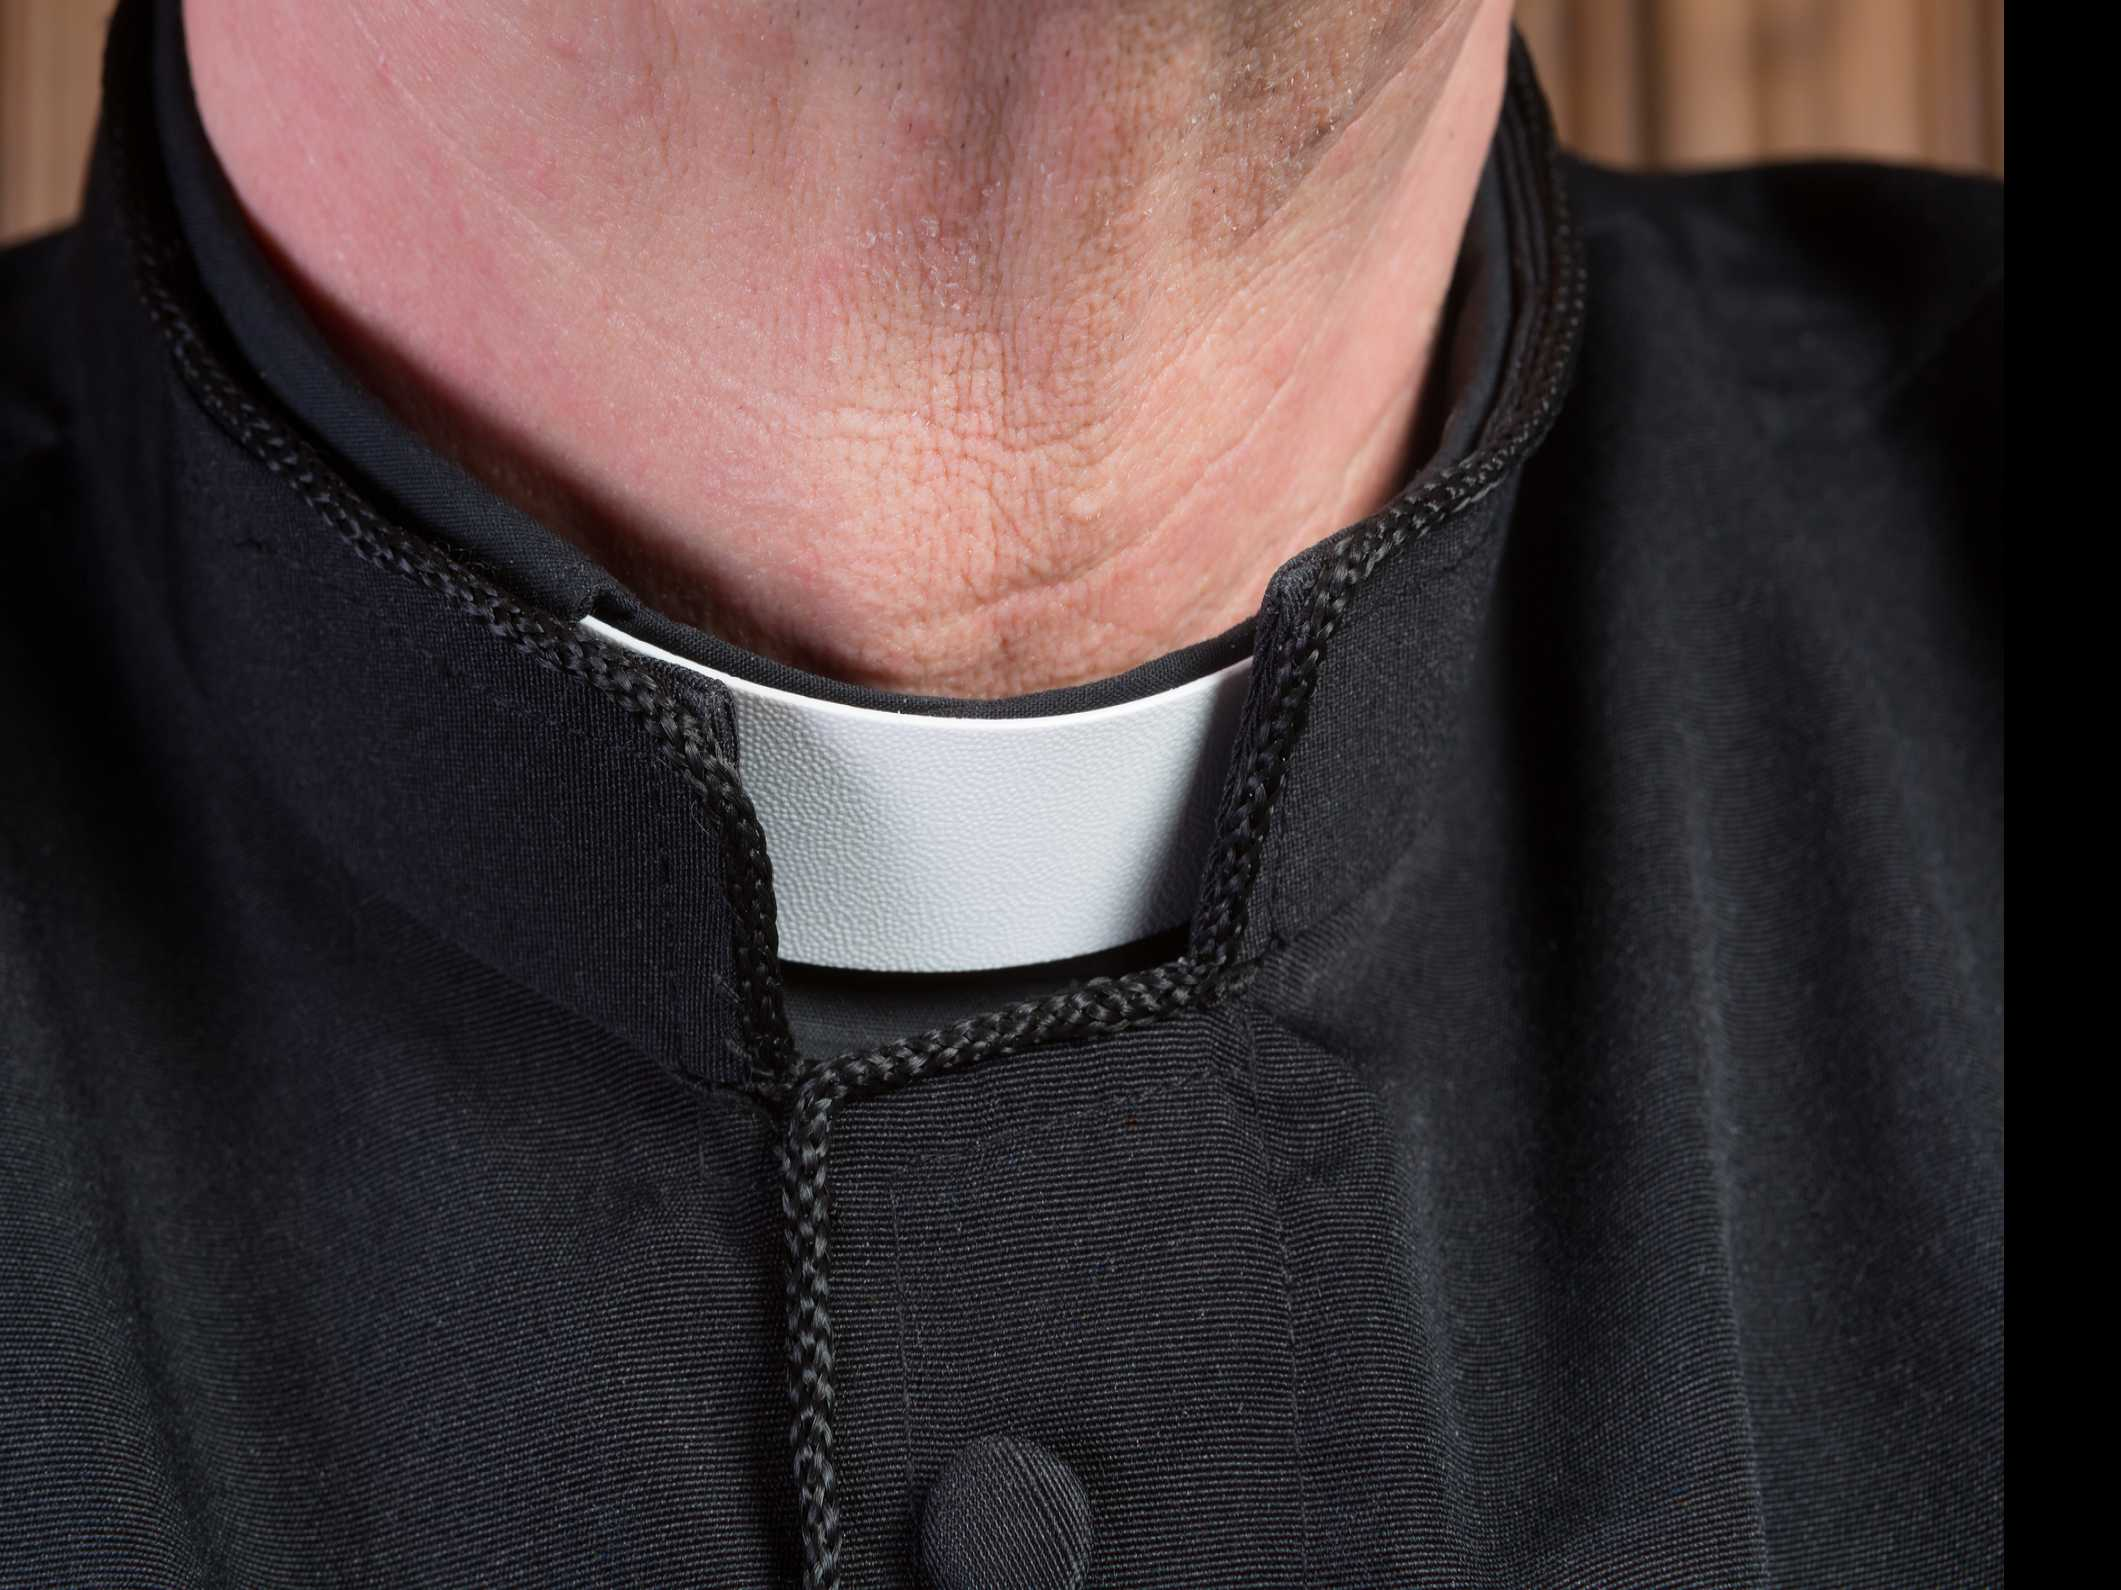 Romanian Bishop Embroiled in Gay Sex Tape Scandal with Student